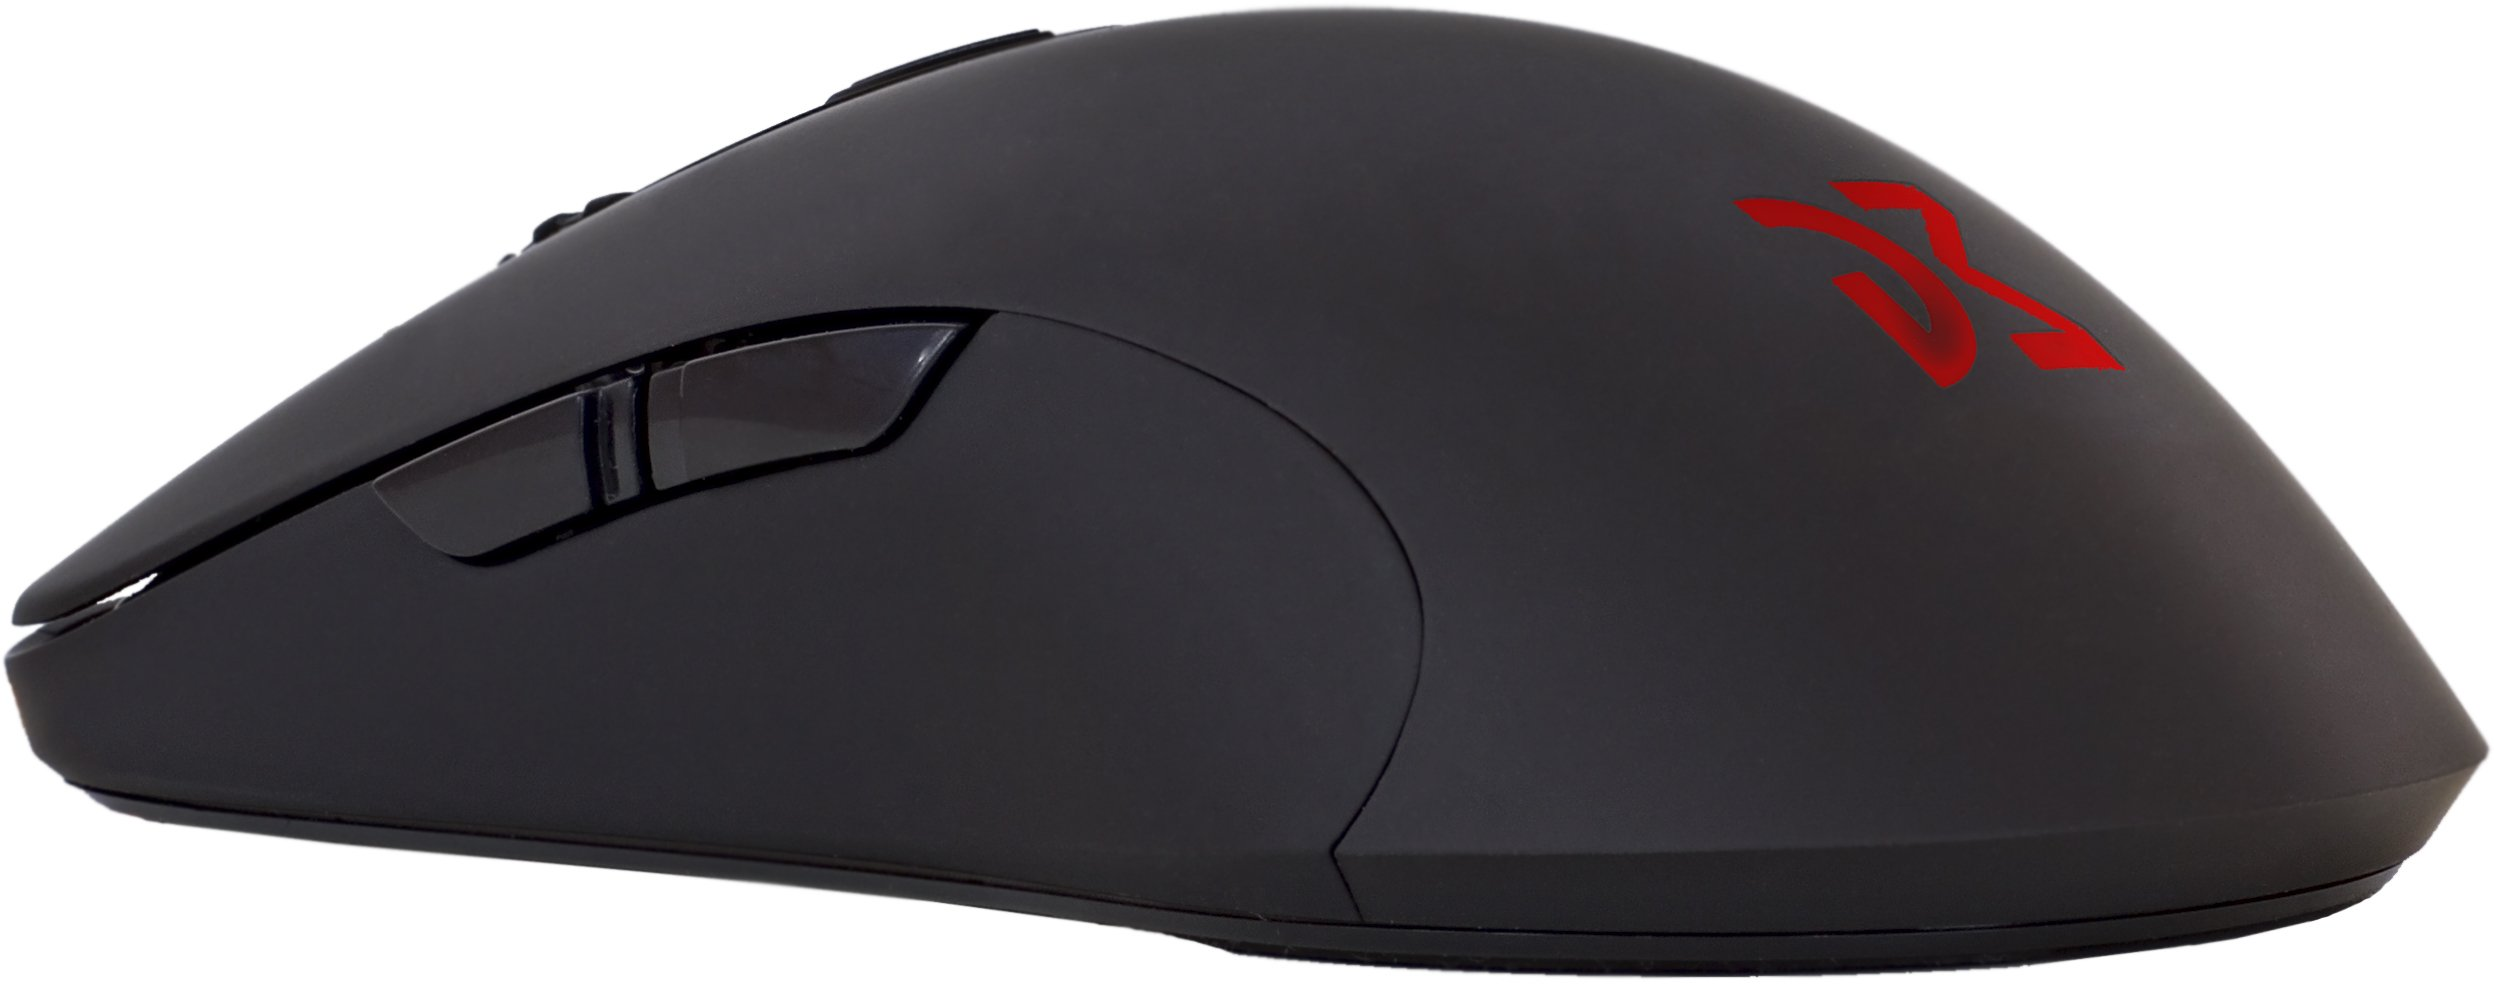 Dream Machines DM1 Pro S Optical Gaming Mouse (Matte) by Dream Machines (Image #6)